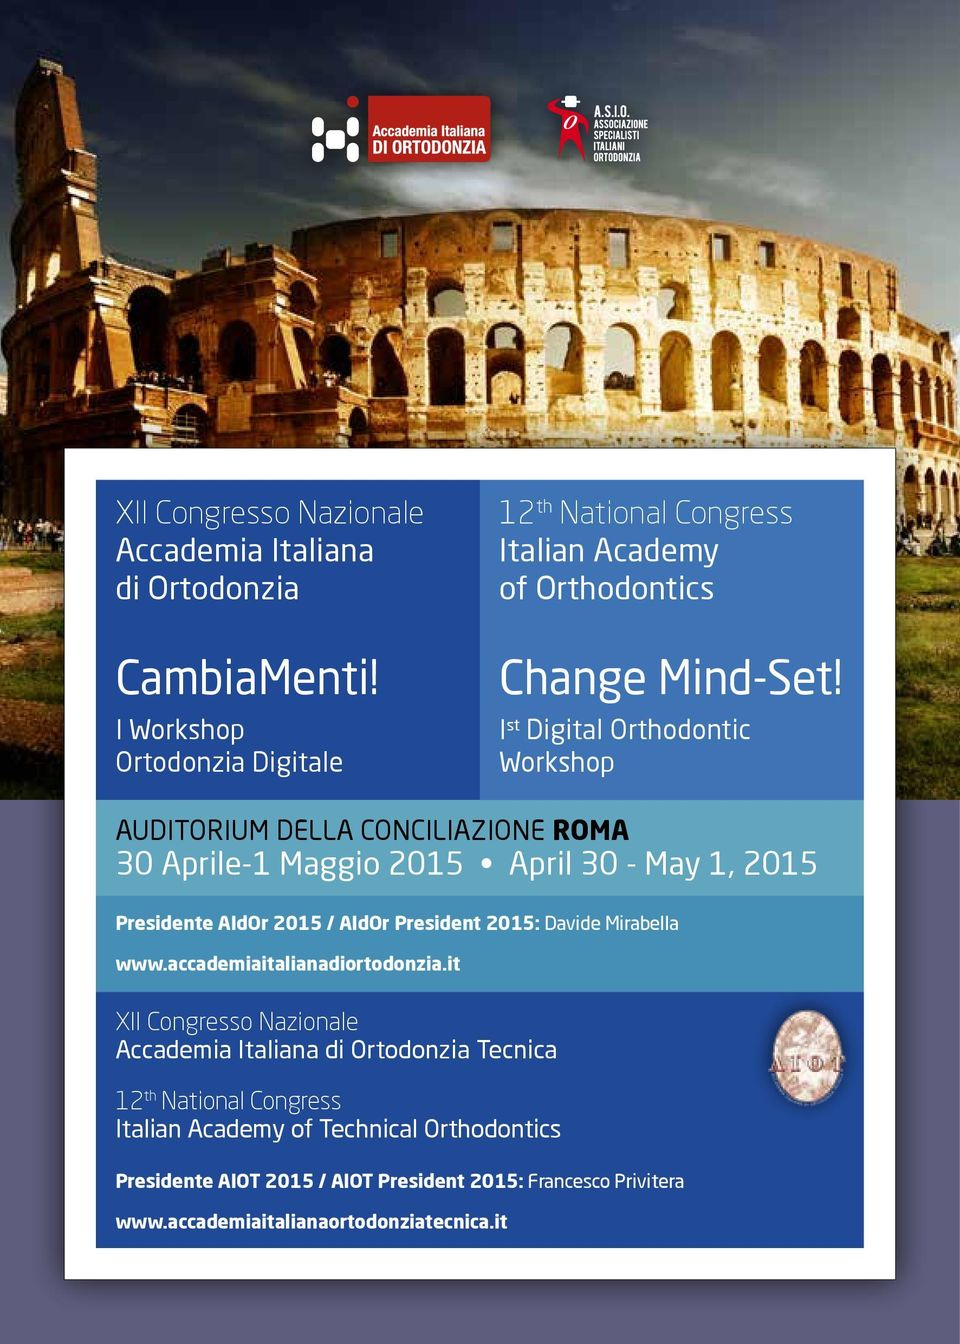 I st Digital Orthodontic Workshop AUDITORIUM DELLA CONCILIAZIONE ROMA 30 Aprile-1 Maggio 2015 April 30 - May 1, 2015 Presidente AIdOr 2015 / AIdOr President